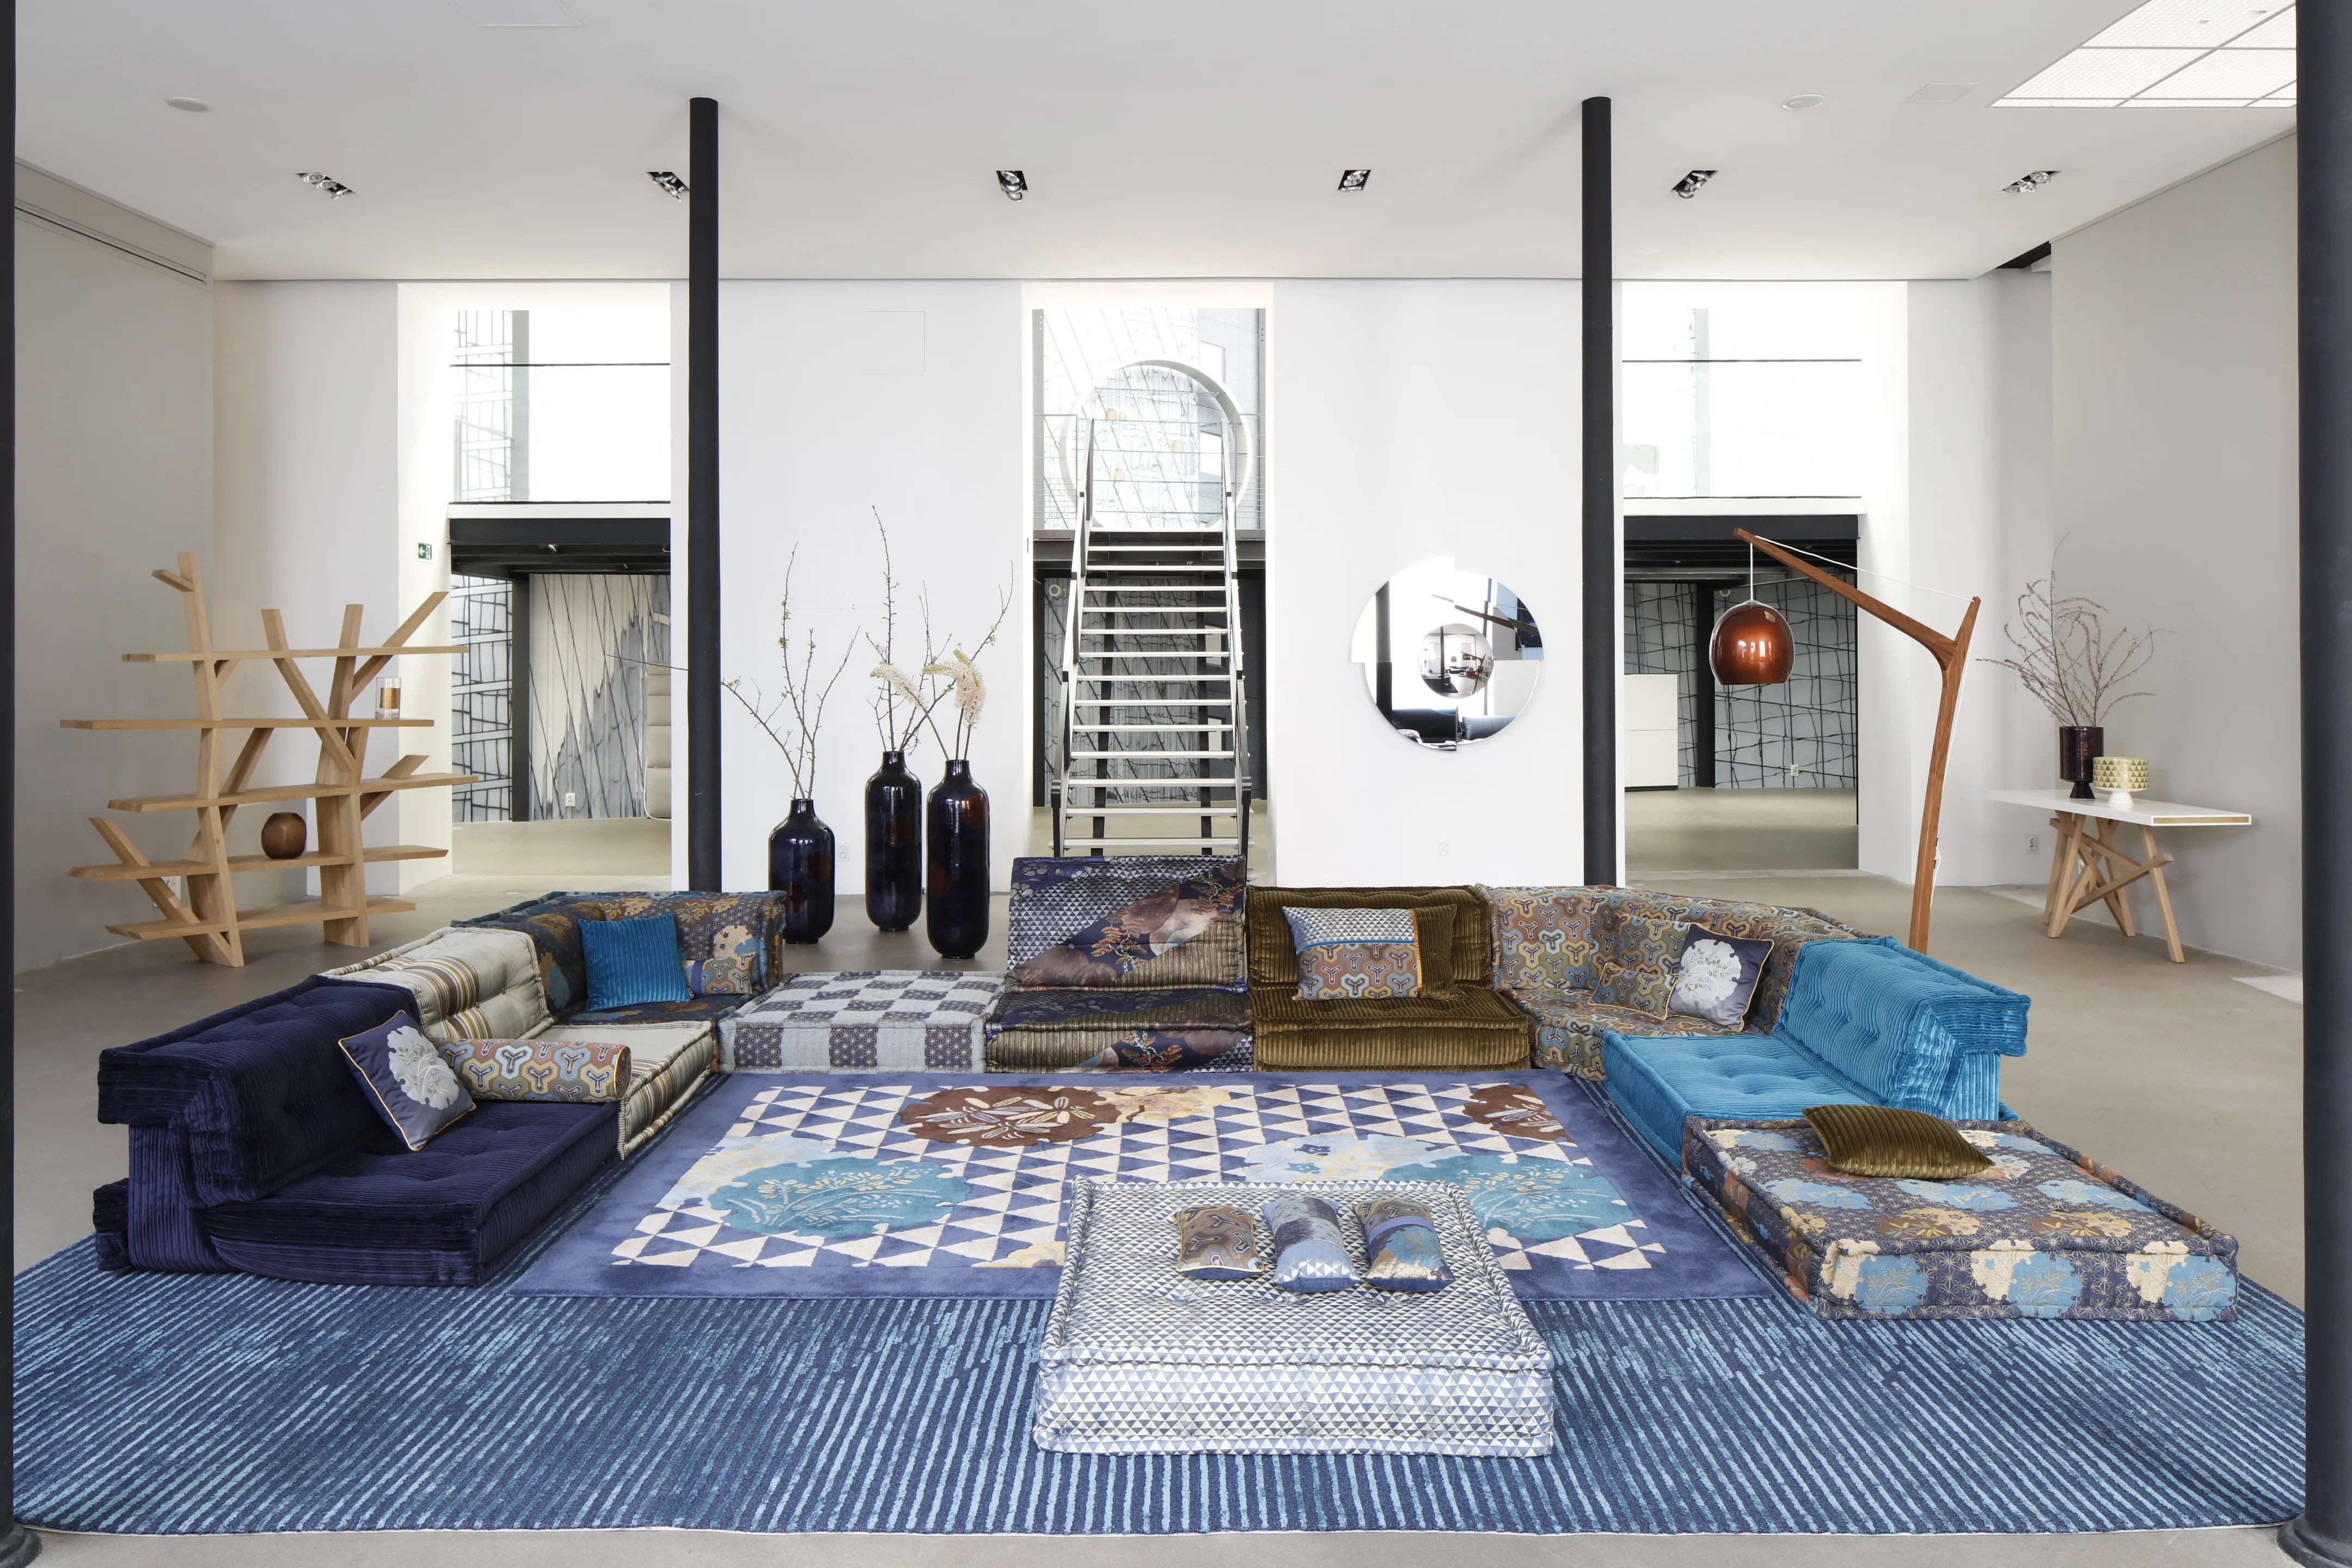 Showroom Canapé Paris Kenzo Takada Reimagines An Iconic Roche Bobois Sofa